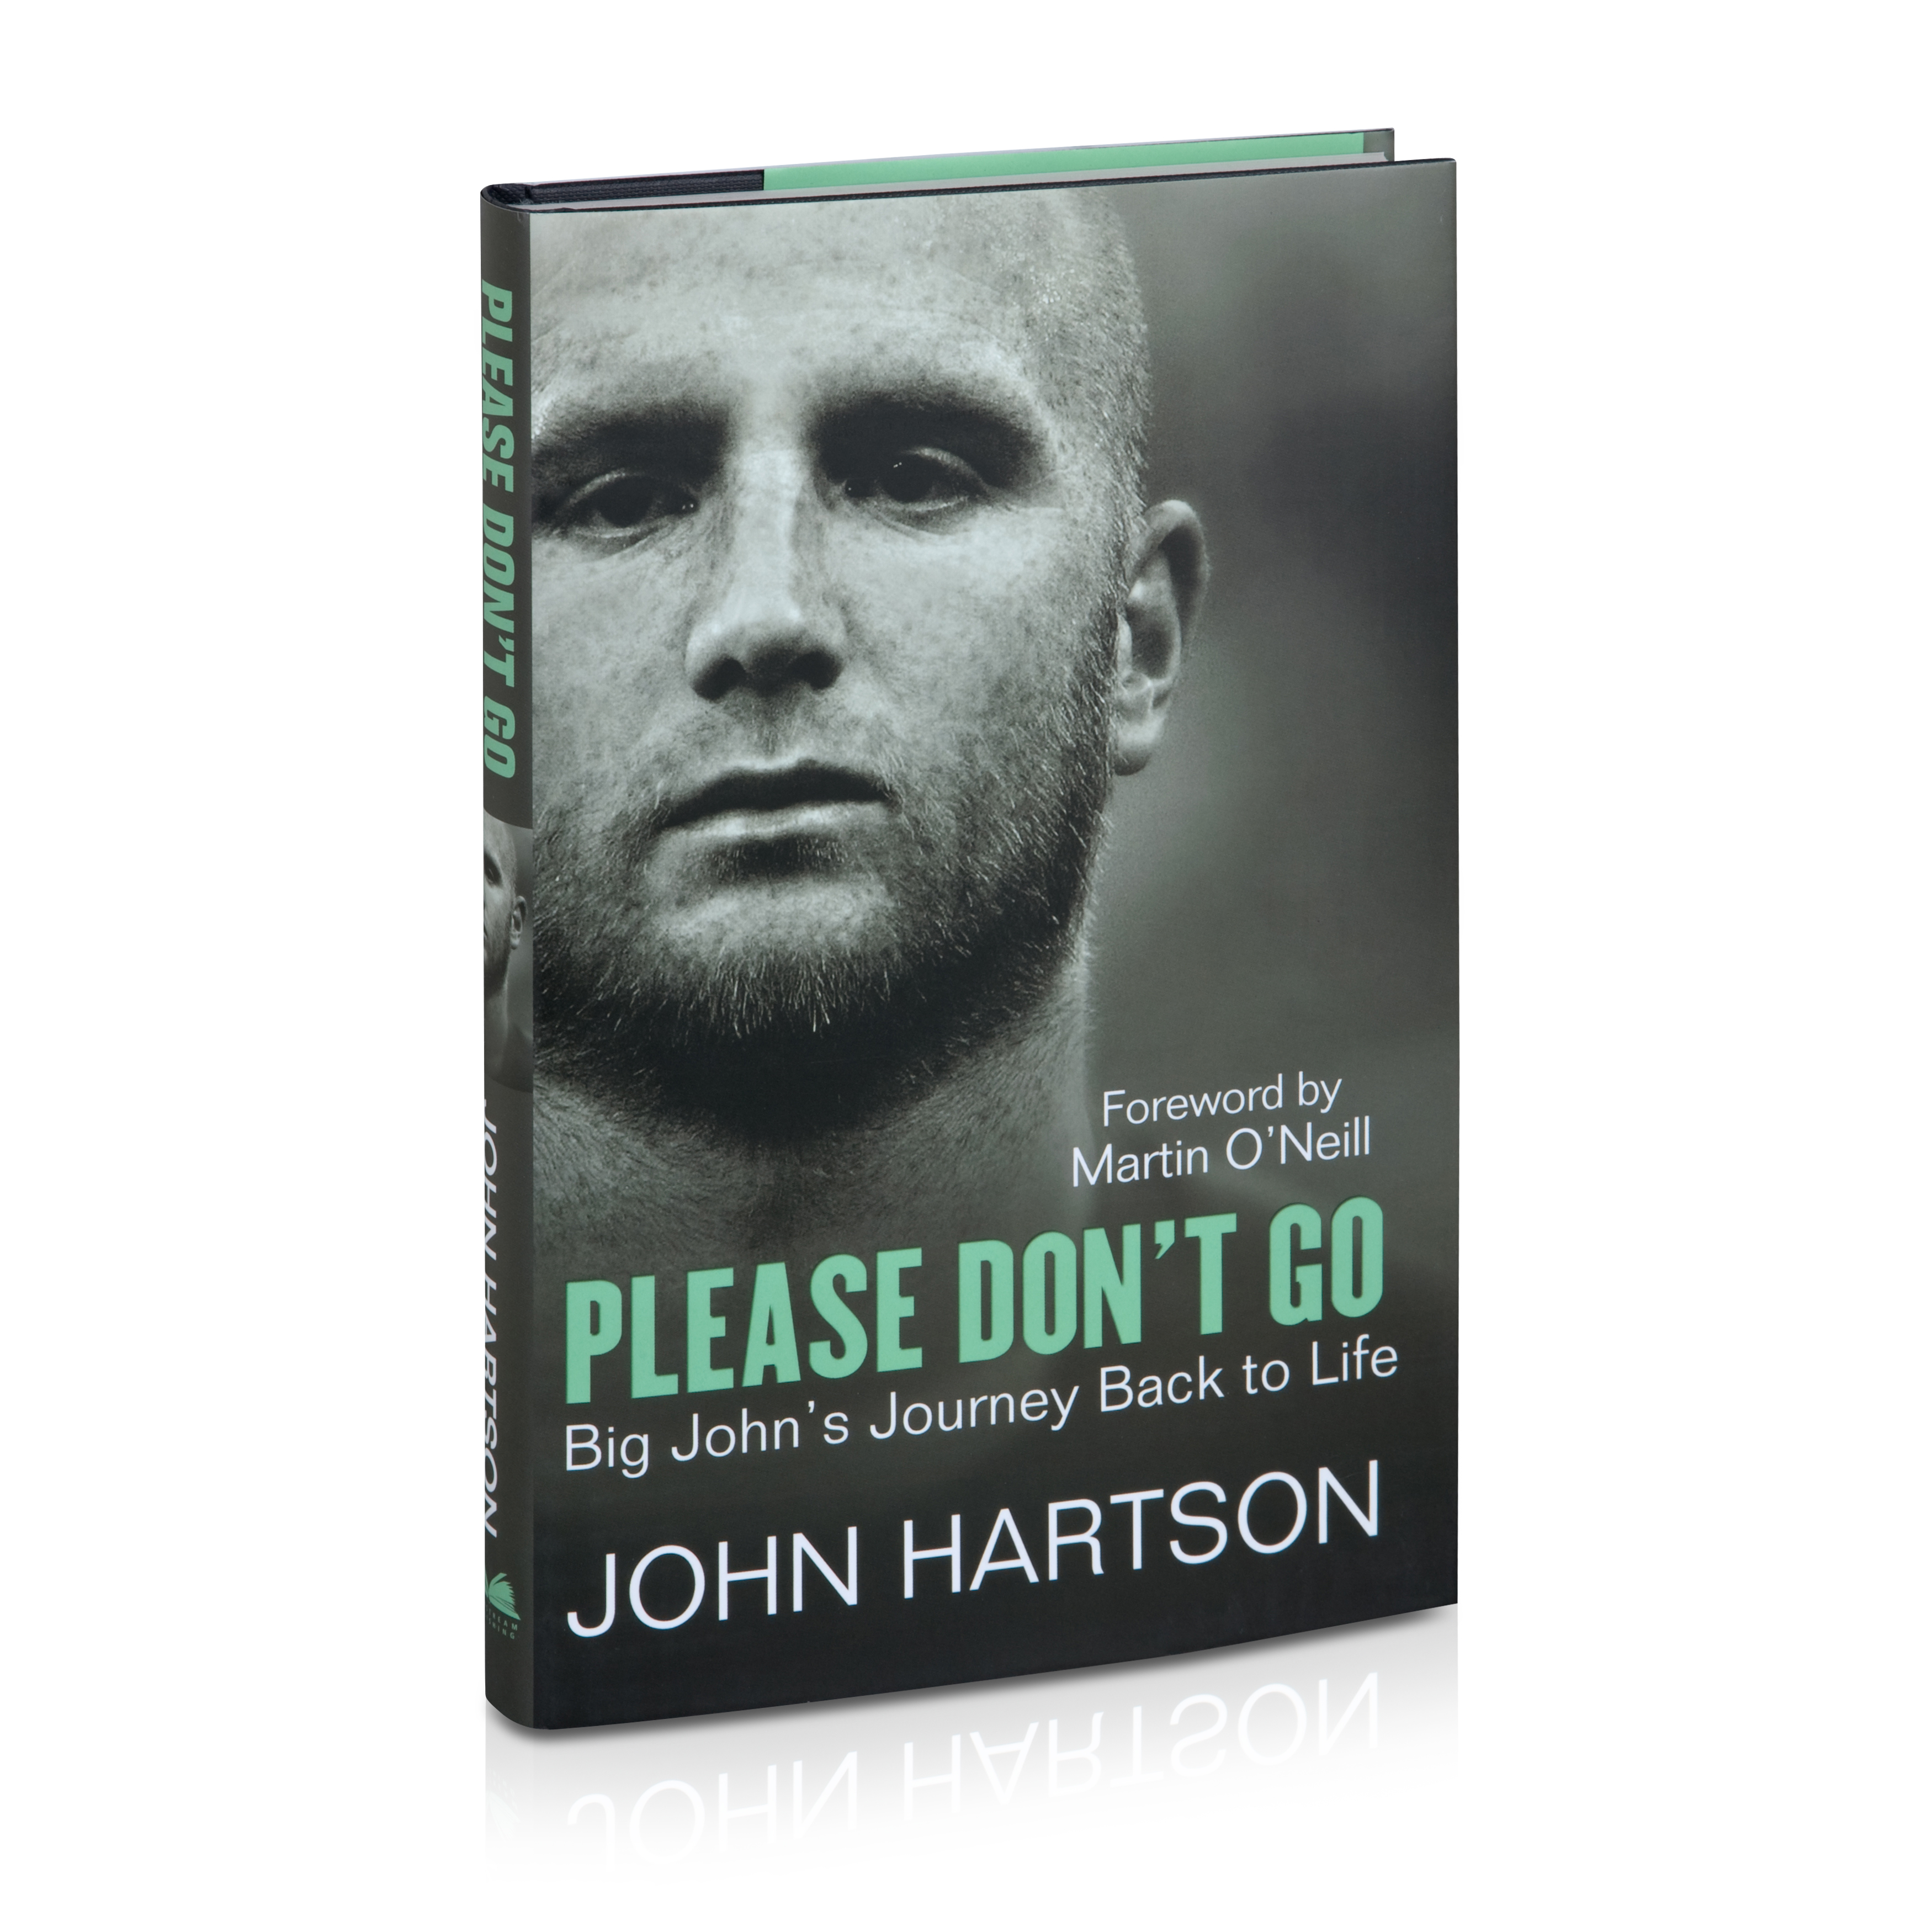 Celtic John Hartson - Please Dont Go Book - Hardback